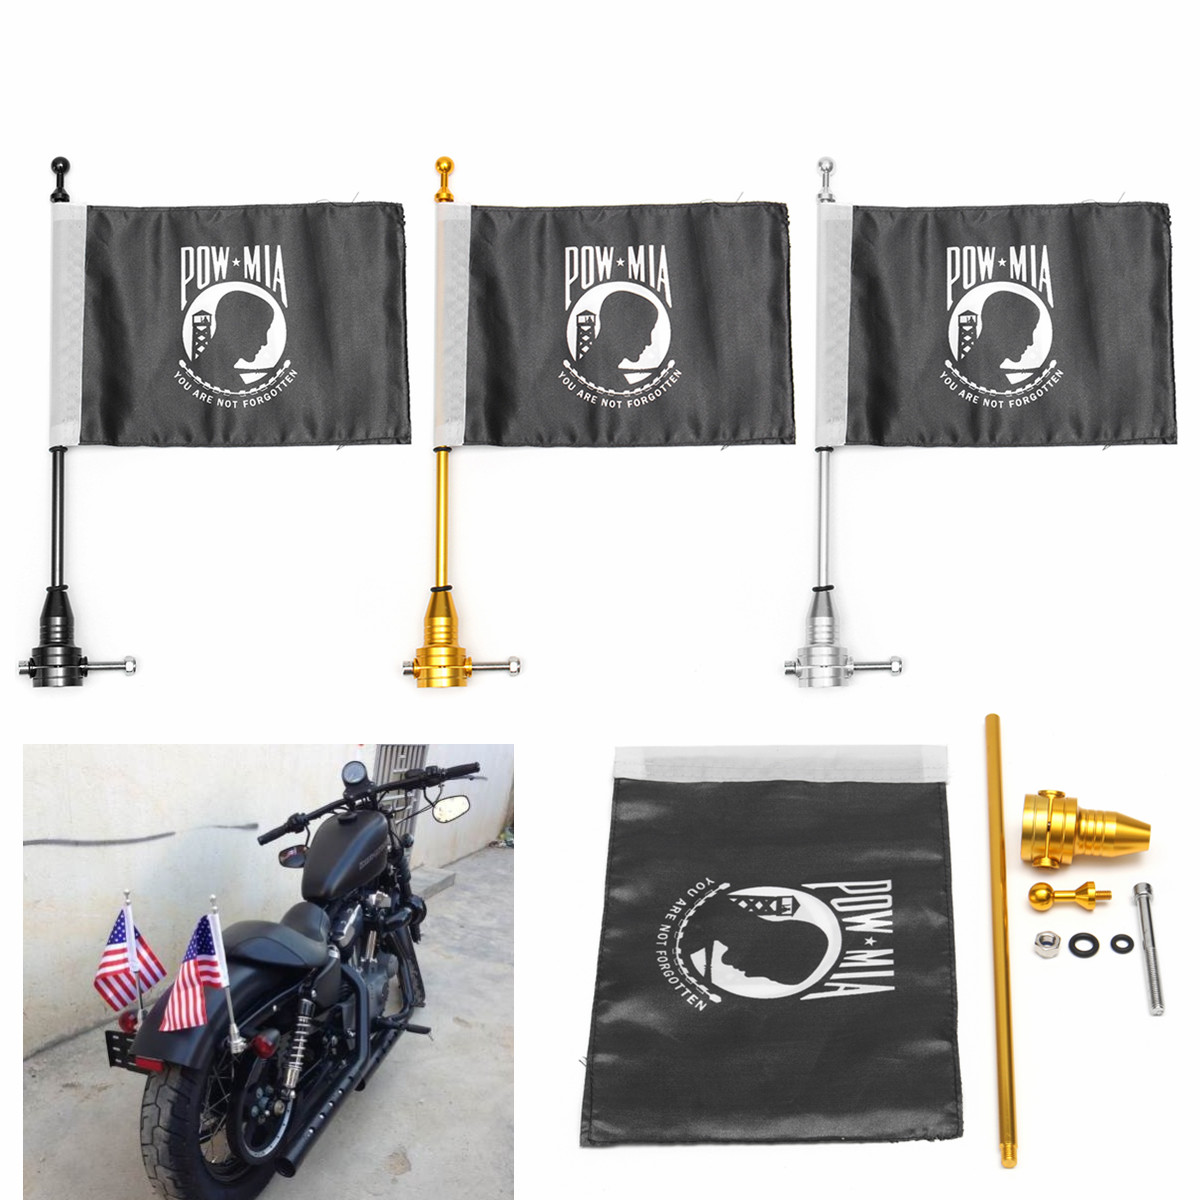 7.28inch x 10.82inch​ Motorcycle Flag Pole Mount Flag For Harley Davidson Luggage Rack